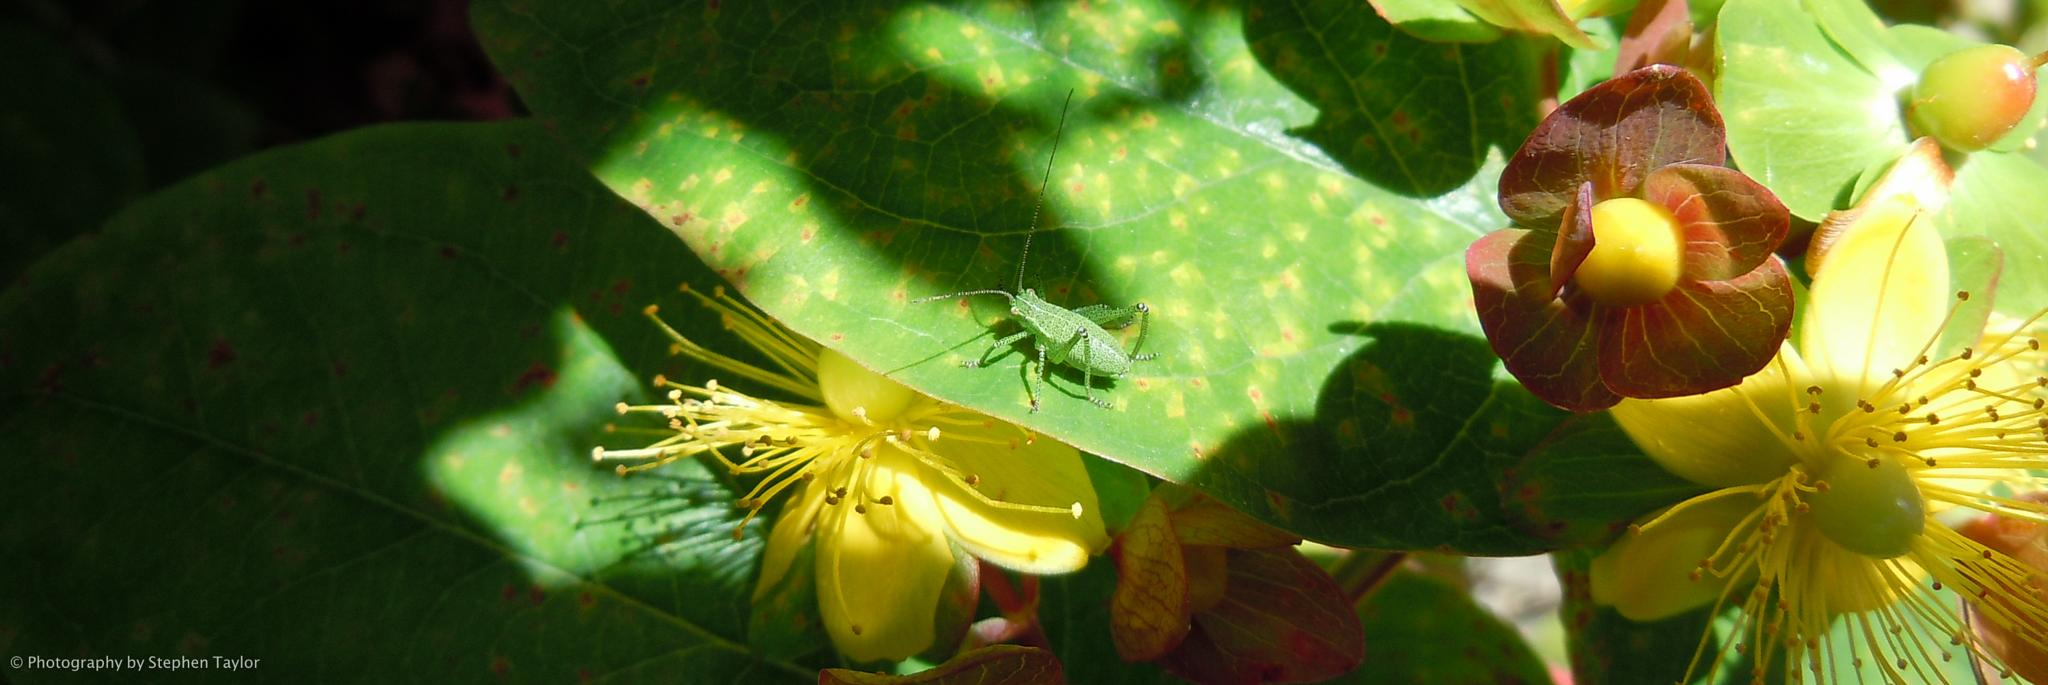 Bug in the sun by Stephen Taylor